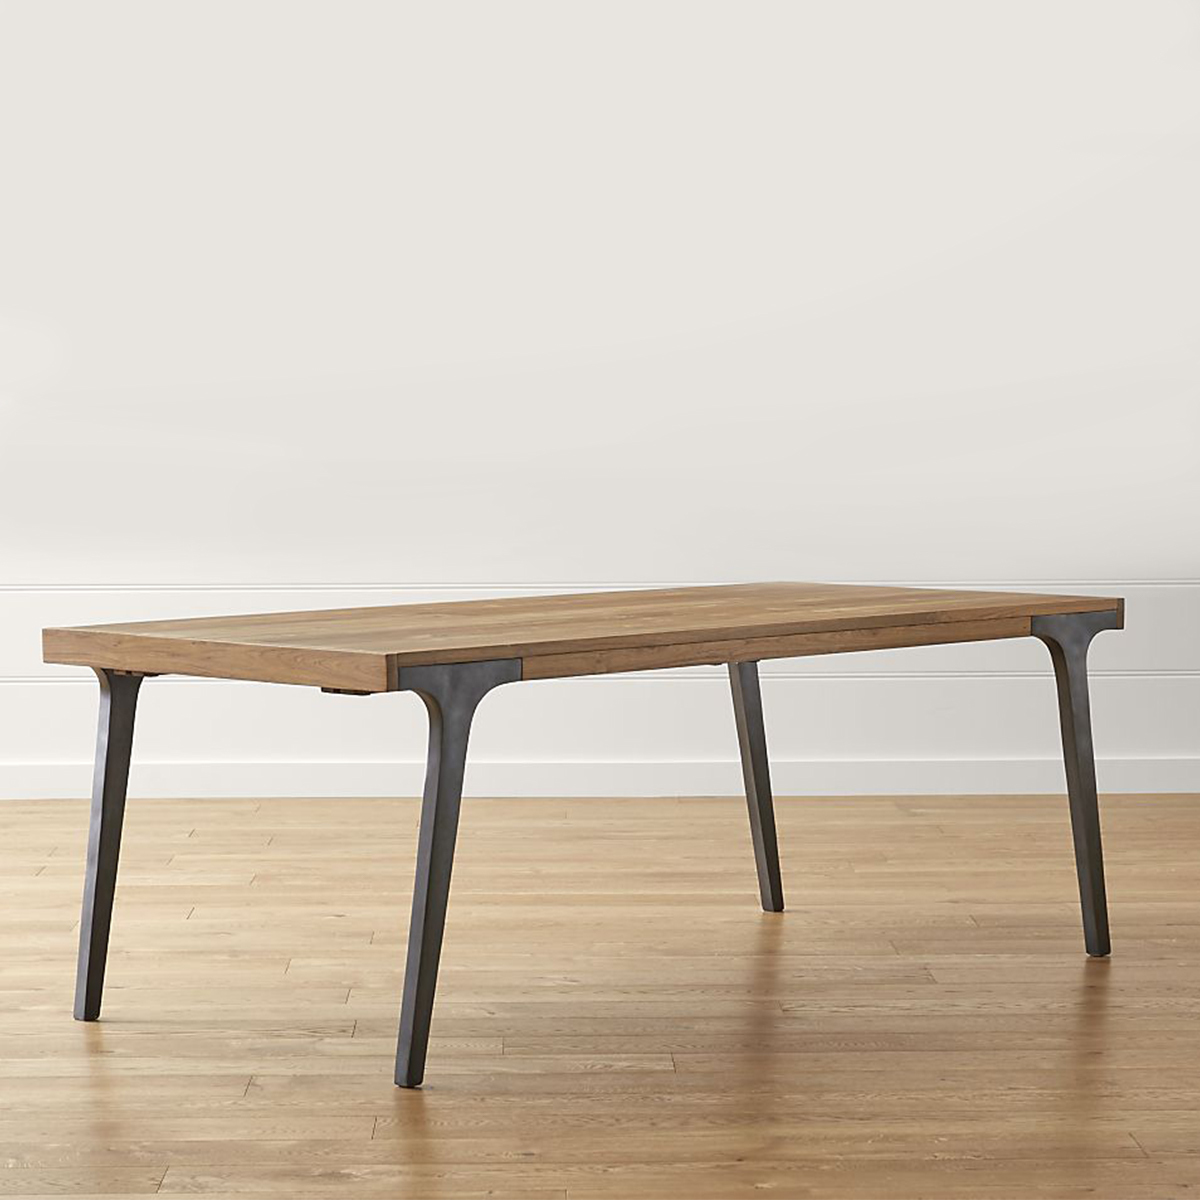 Wood dining table with metal legs photo